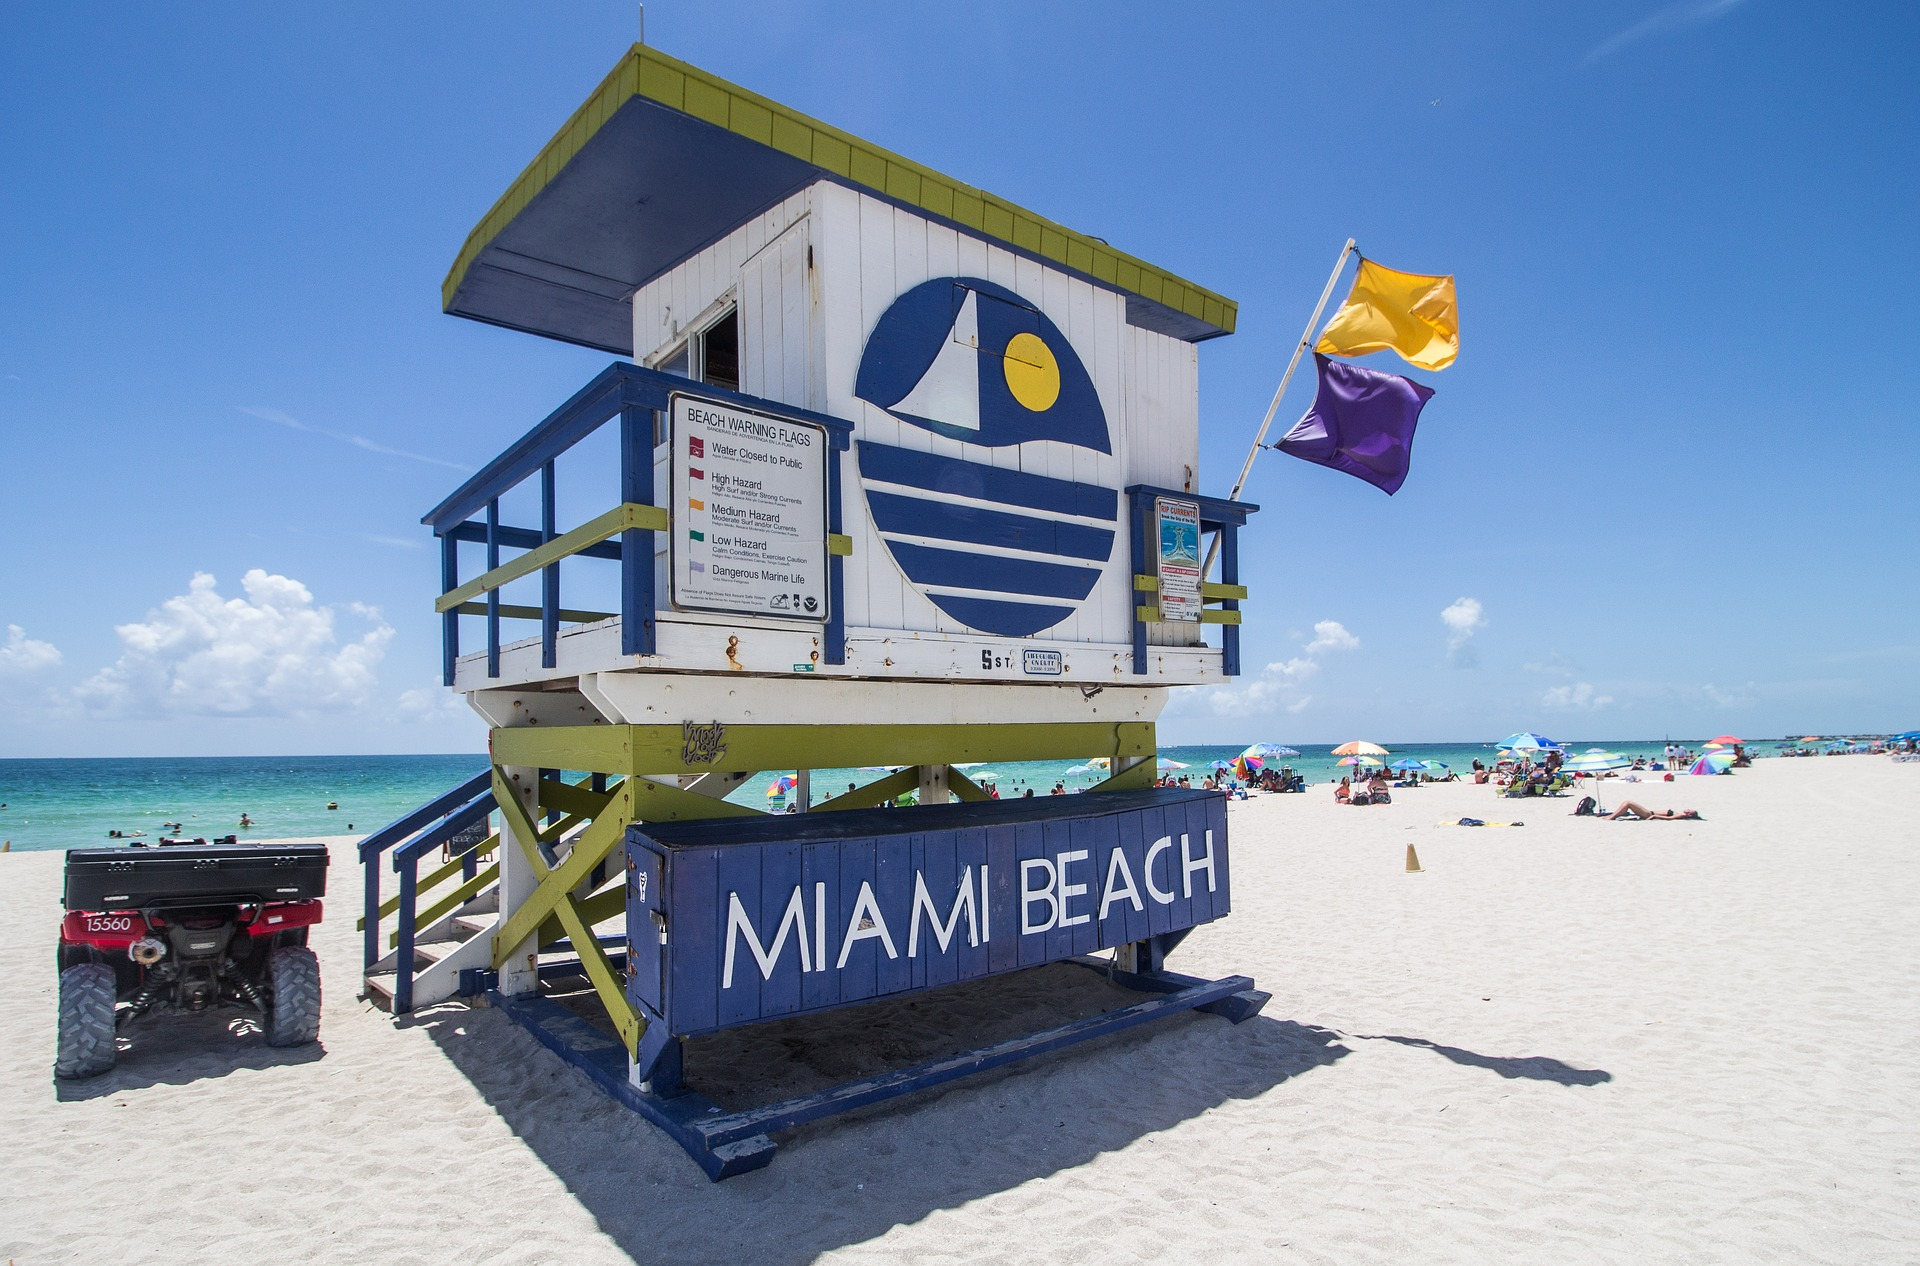 Miami Beach Lifeguard Tower 5th Street